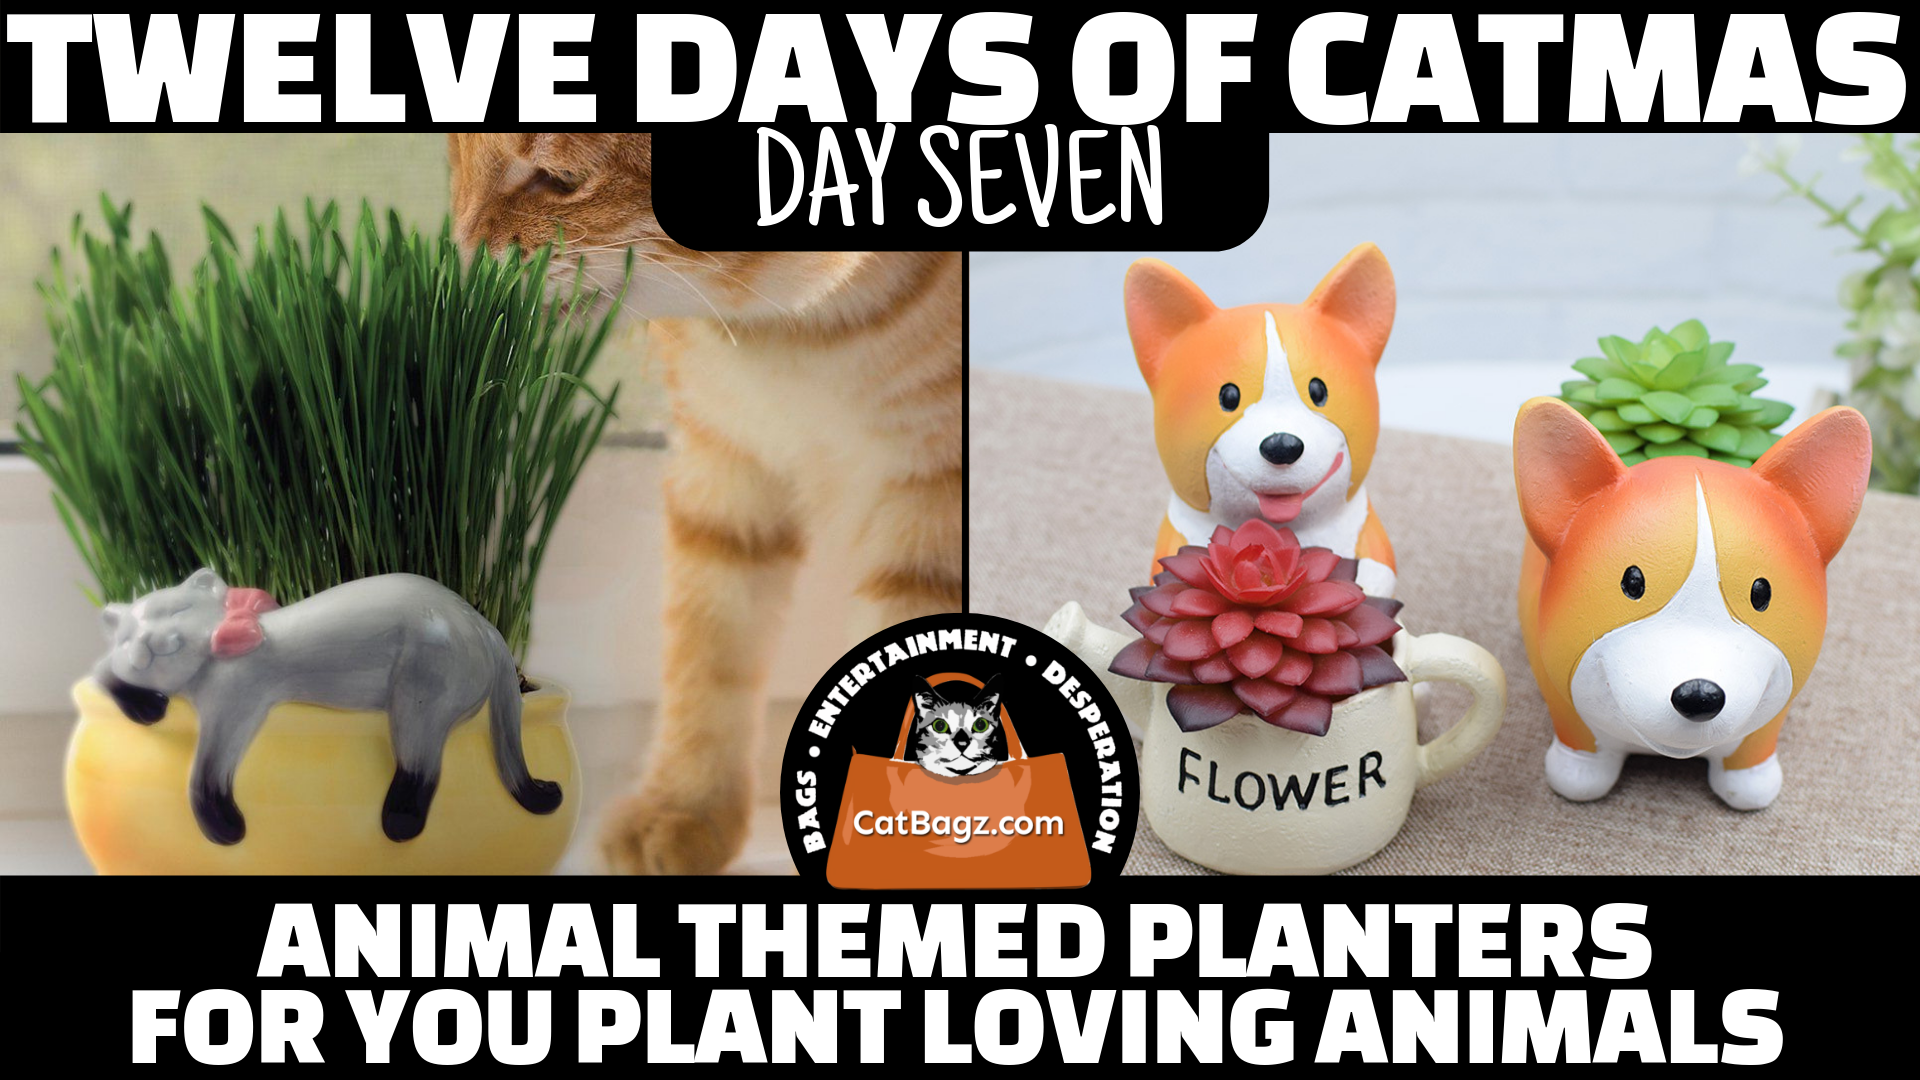 Twelve Days of Catmas - Day Seven - Animal Themed Planters For You Plant Loving Animals